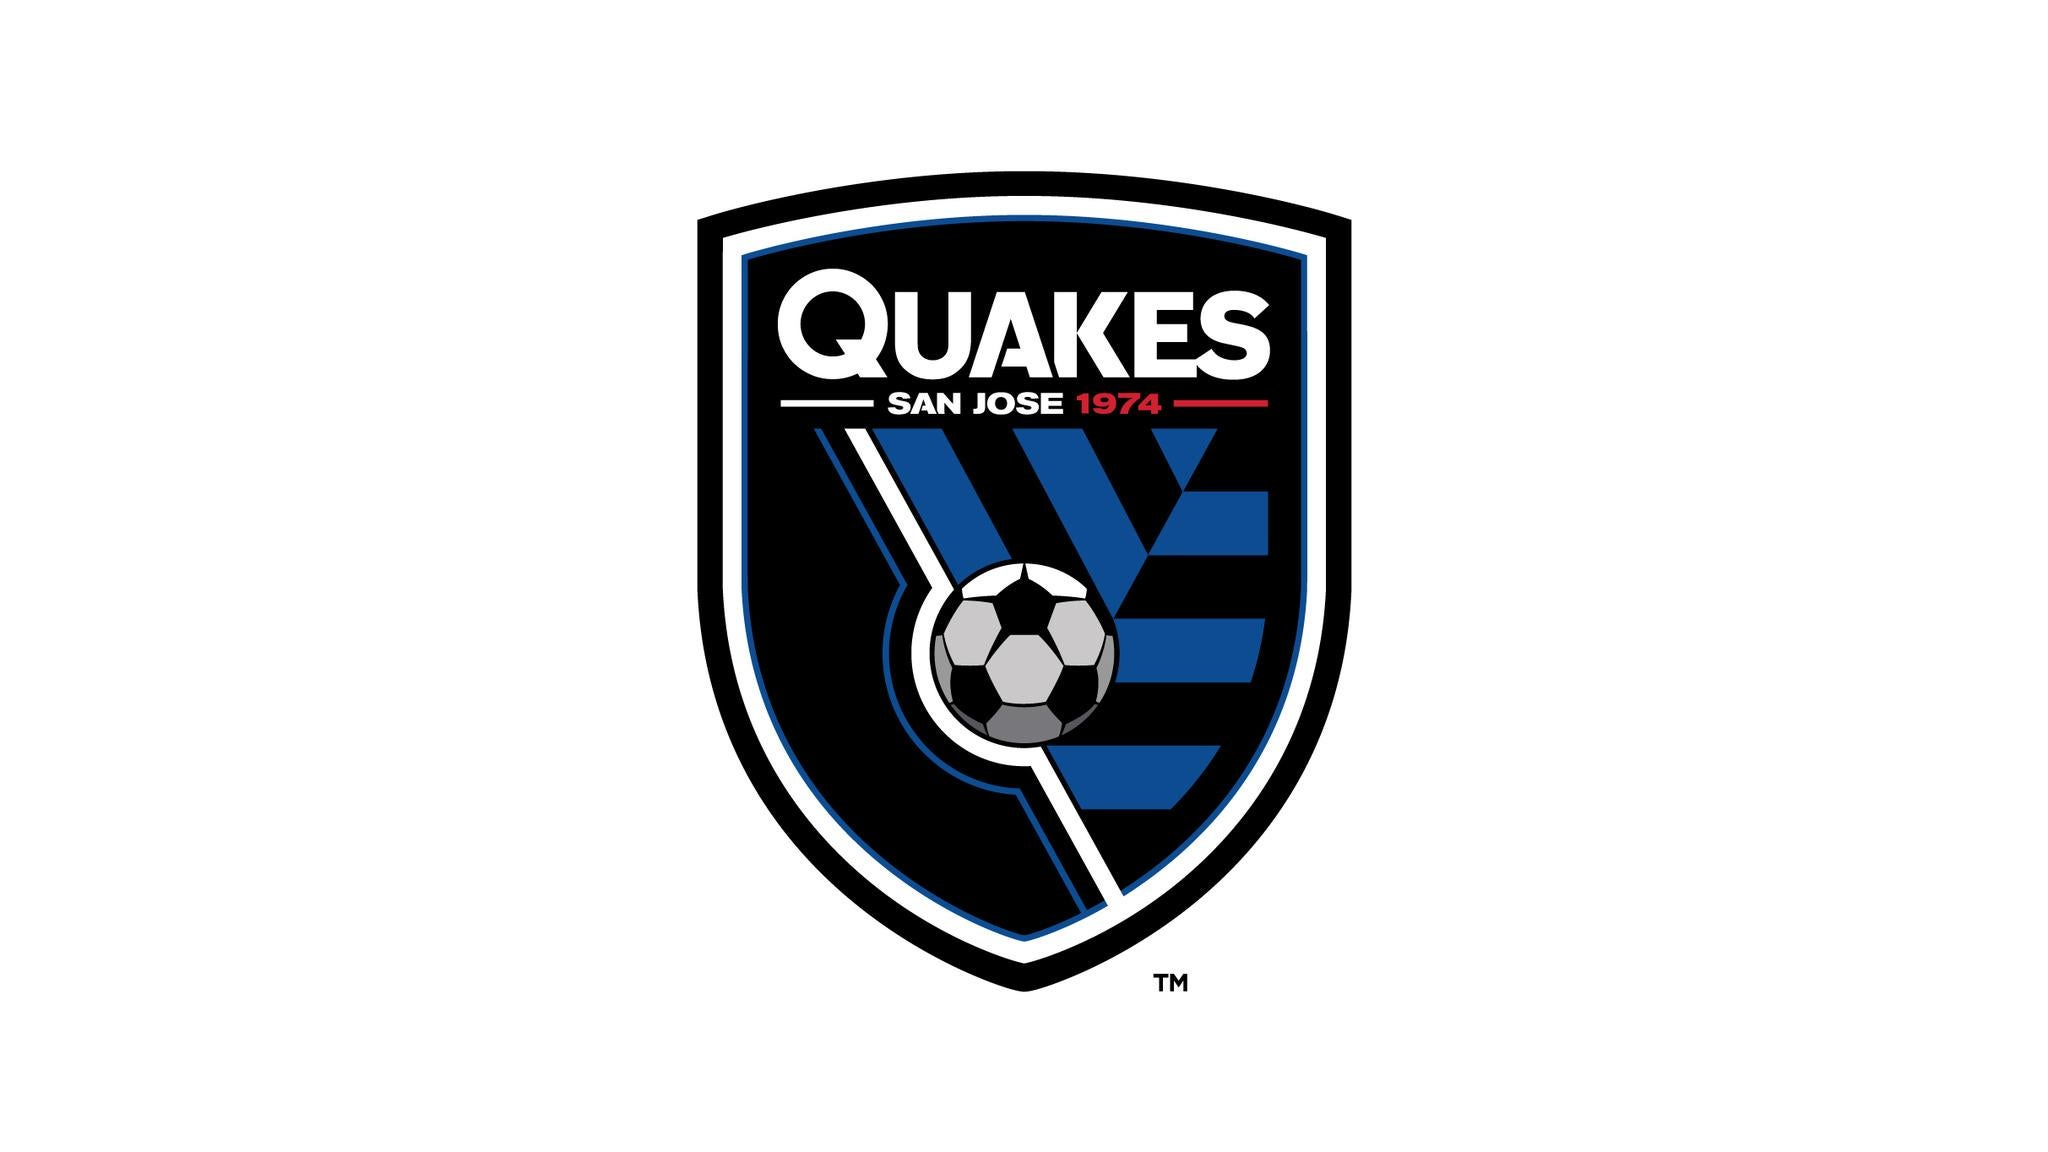 San Jose Earthquakes vs. Montreal Impact at Avaya Stadium